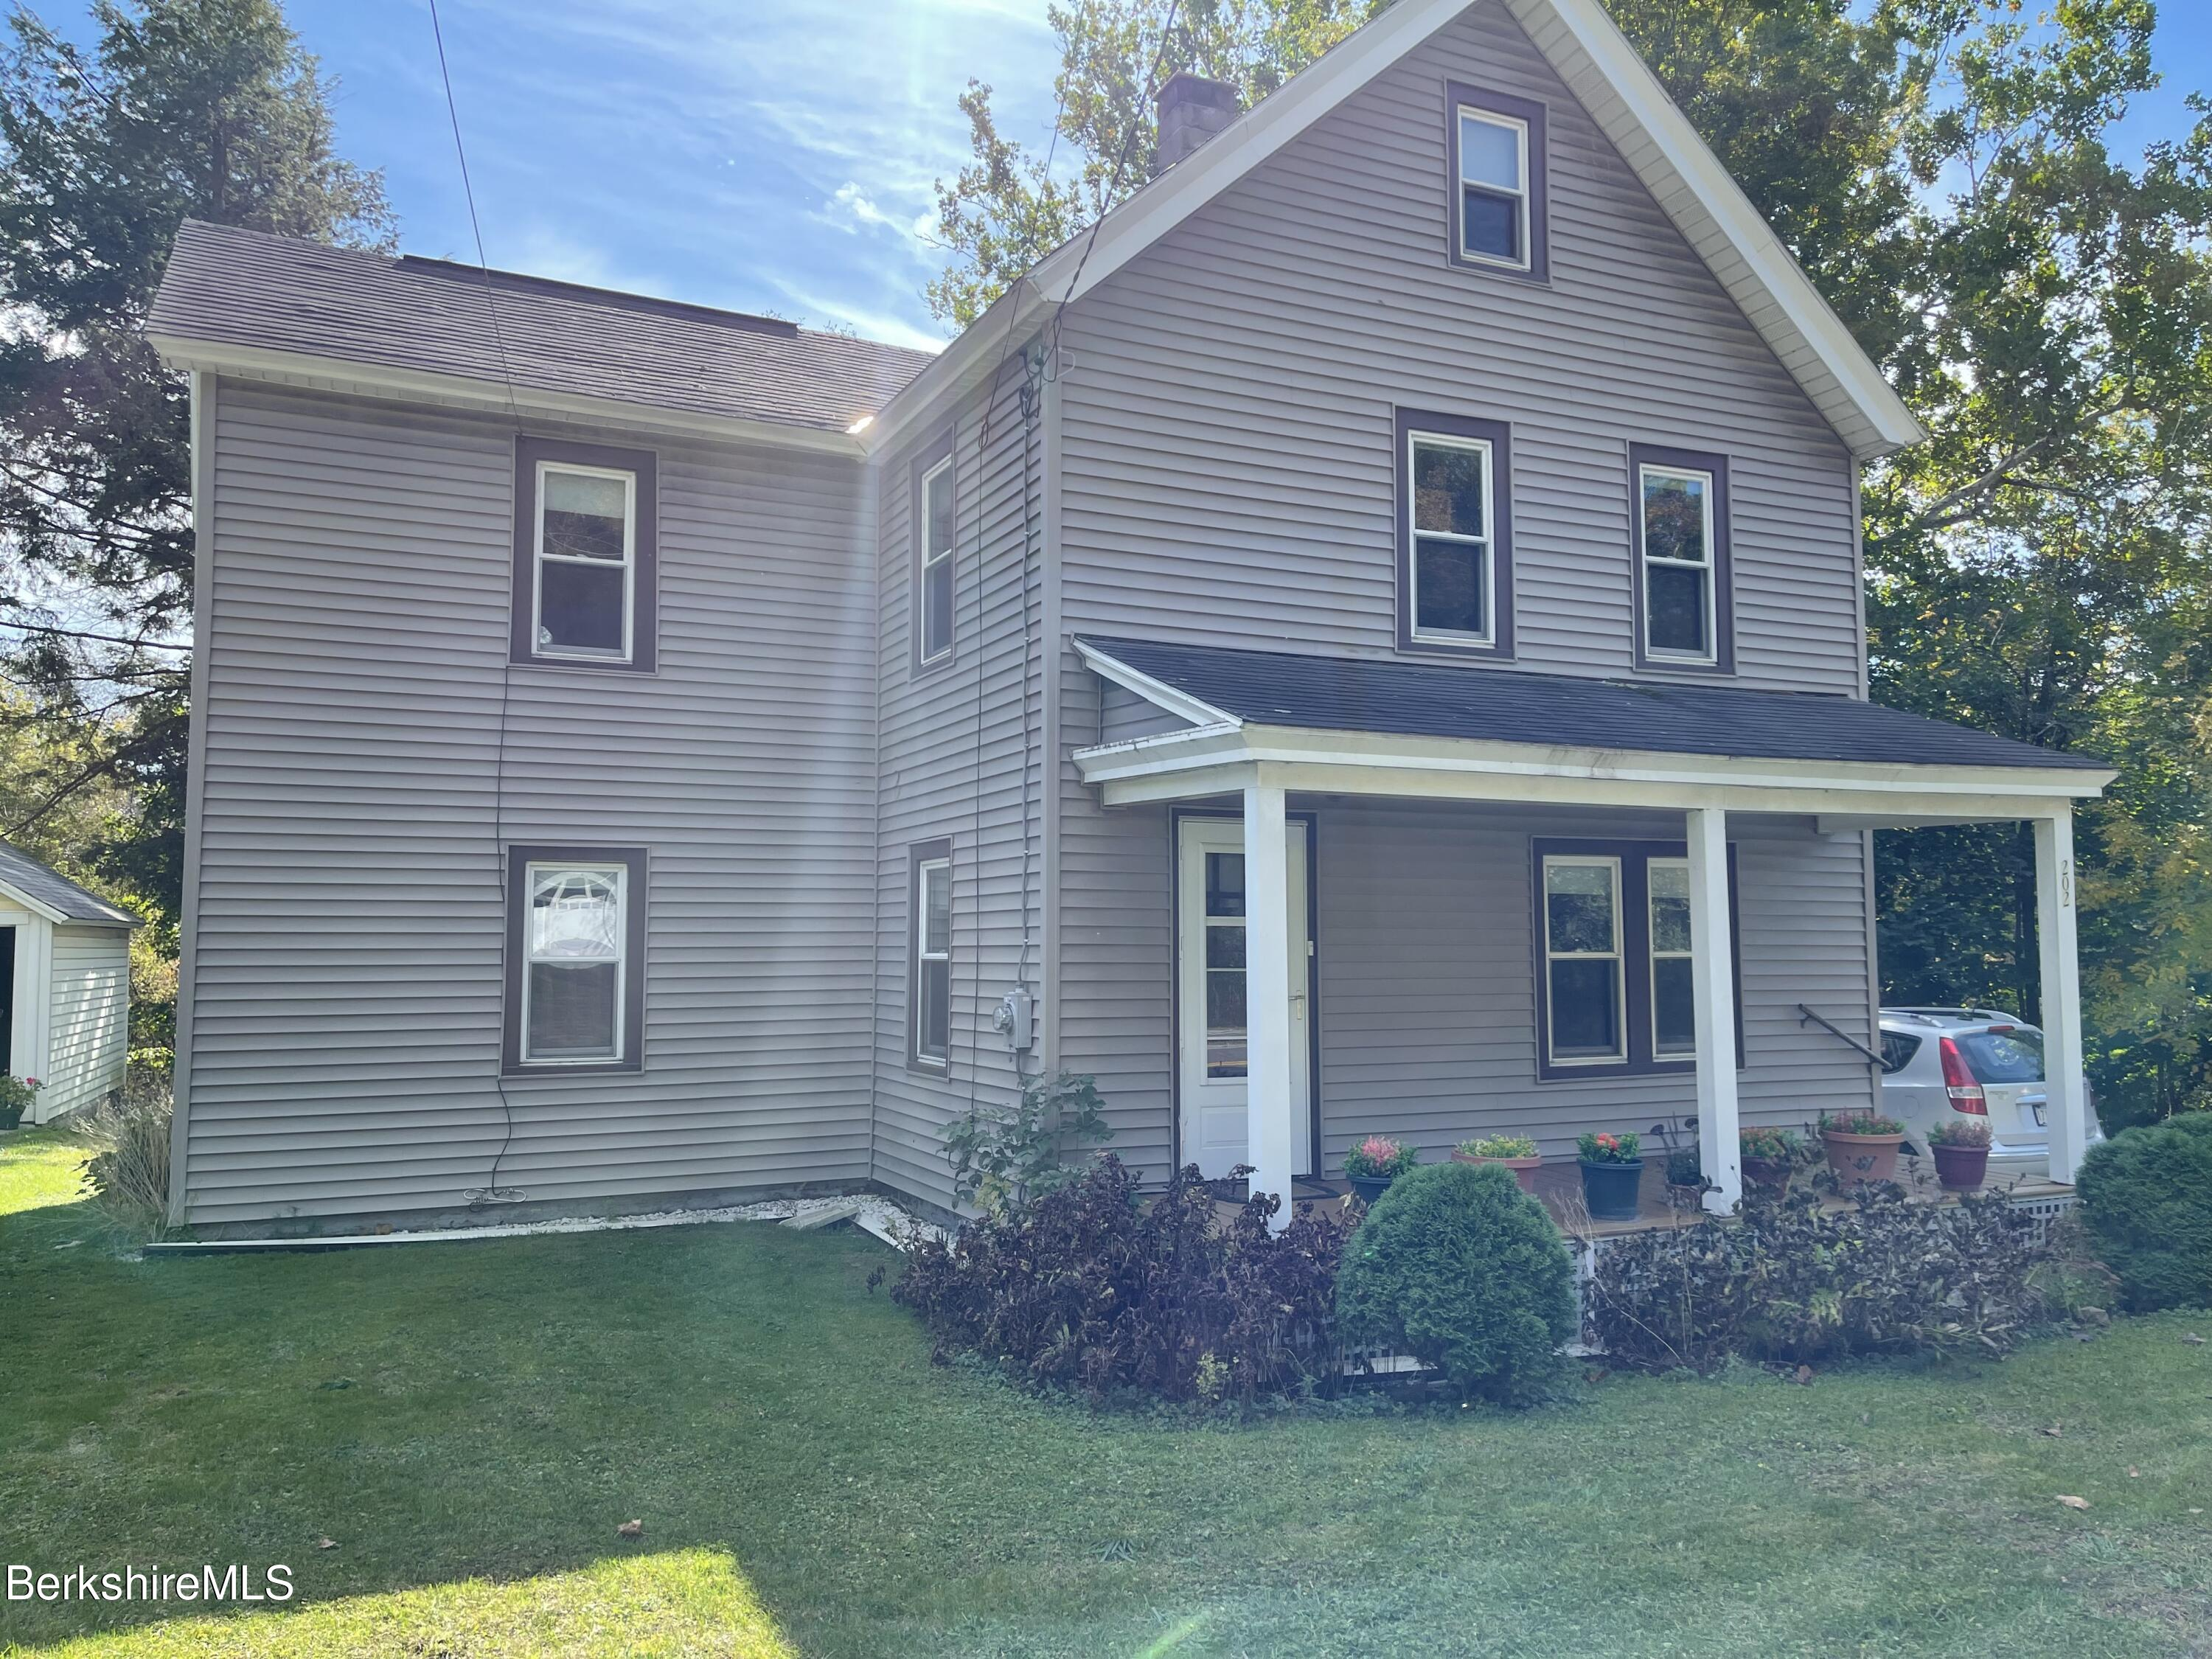 202 Cold Spring Rd Williamstown MA 01267